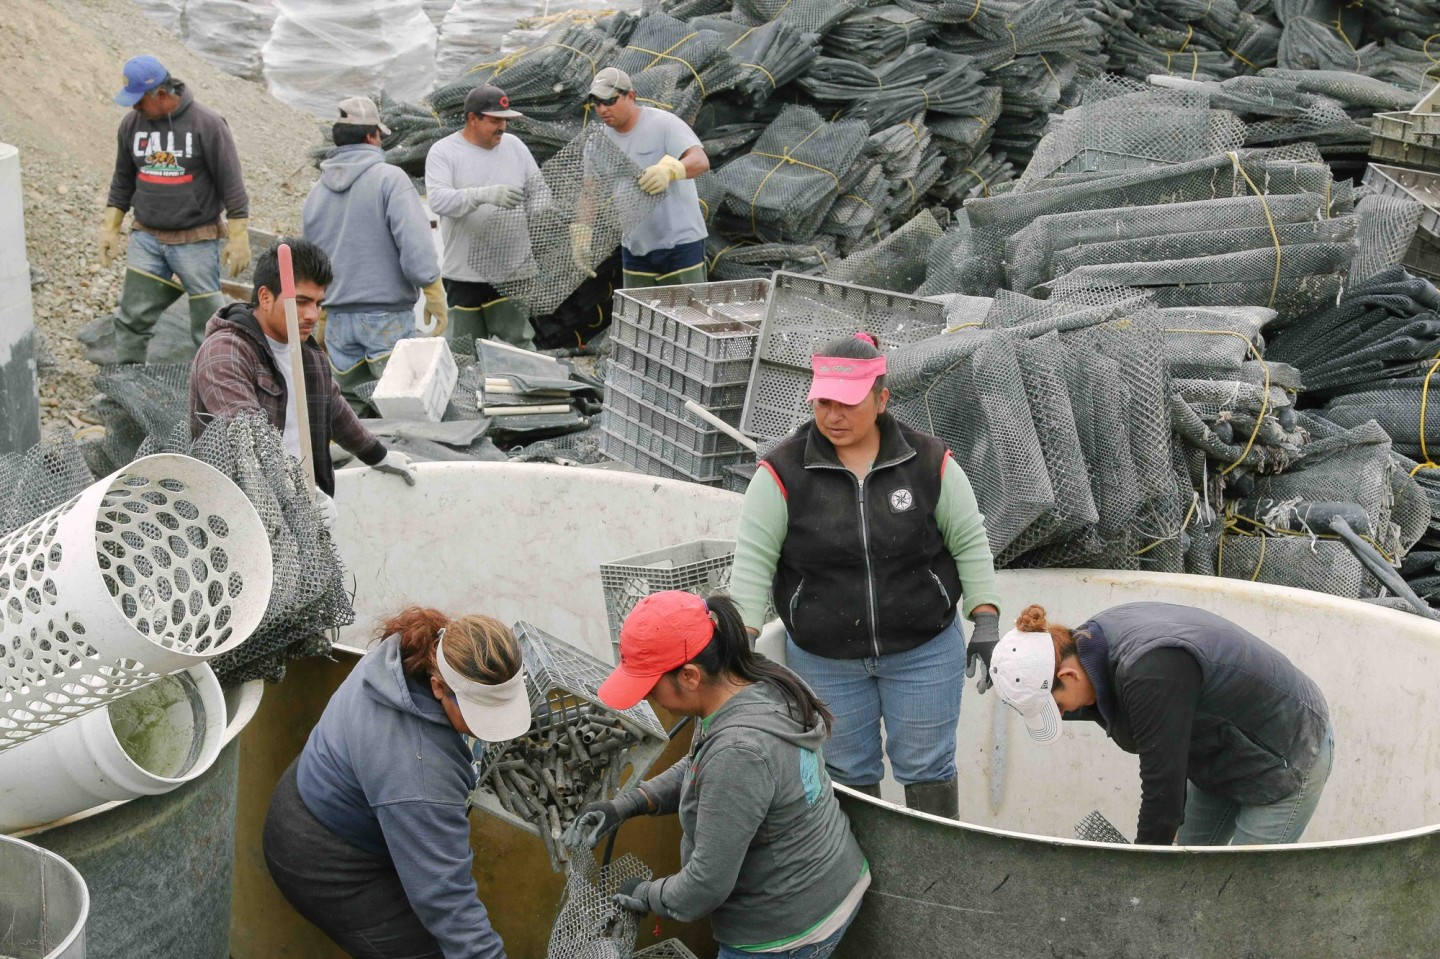 National Park Service, Drakes Bay Oyster Co. Announce Exit Agreement